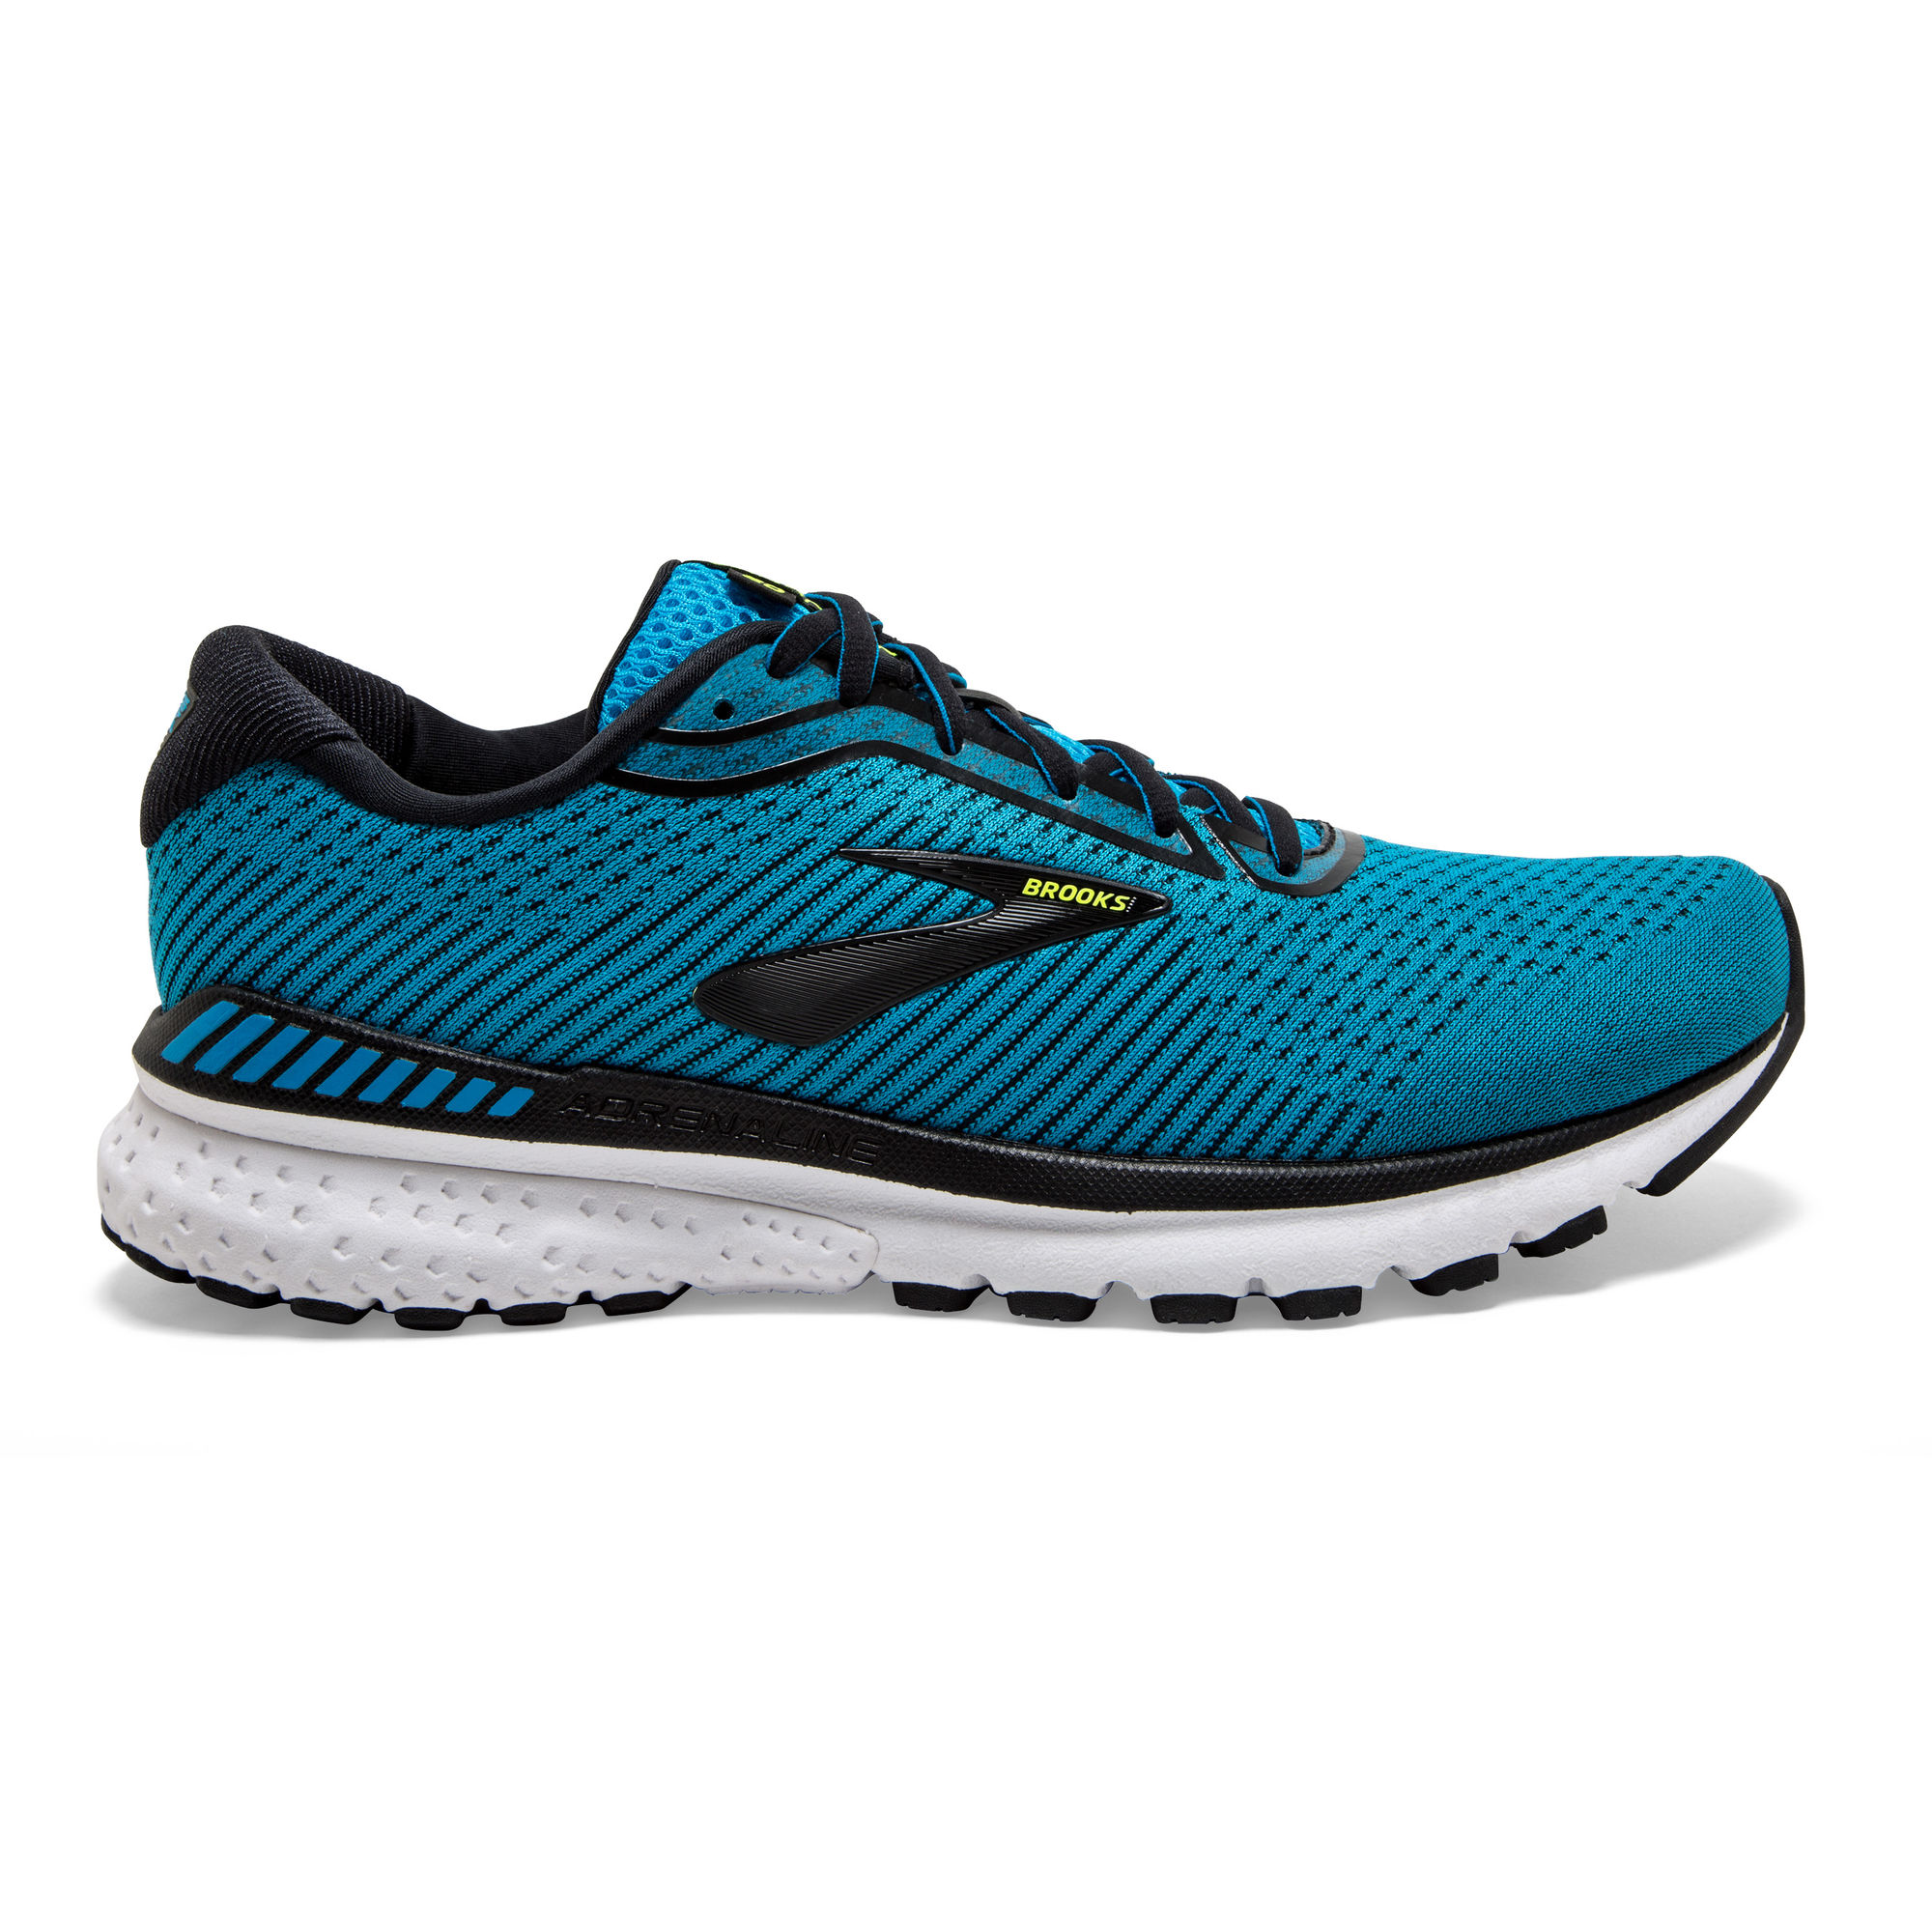 Brooks Adrenaline 20 D (Blau)